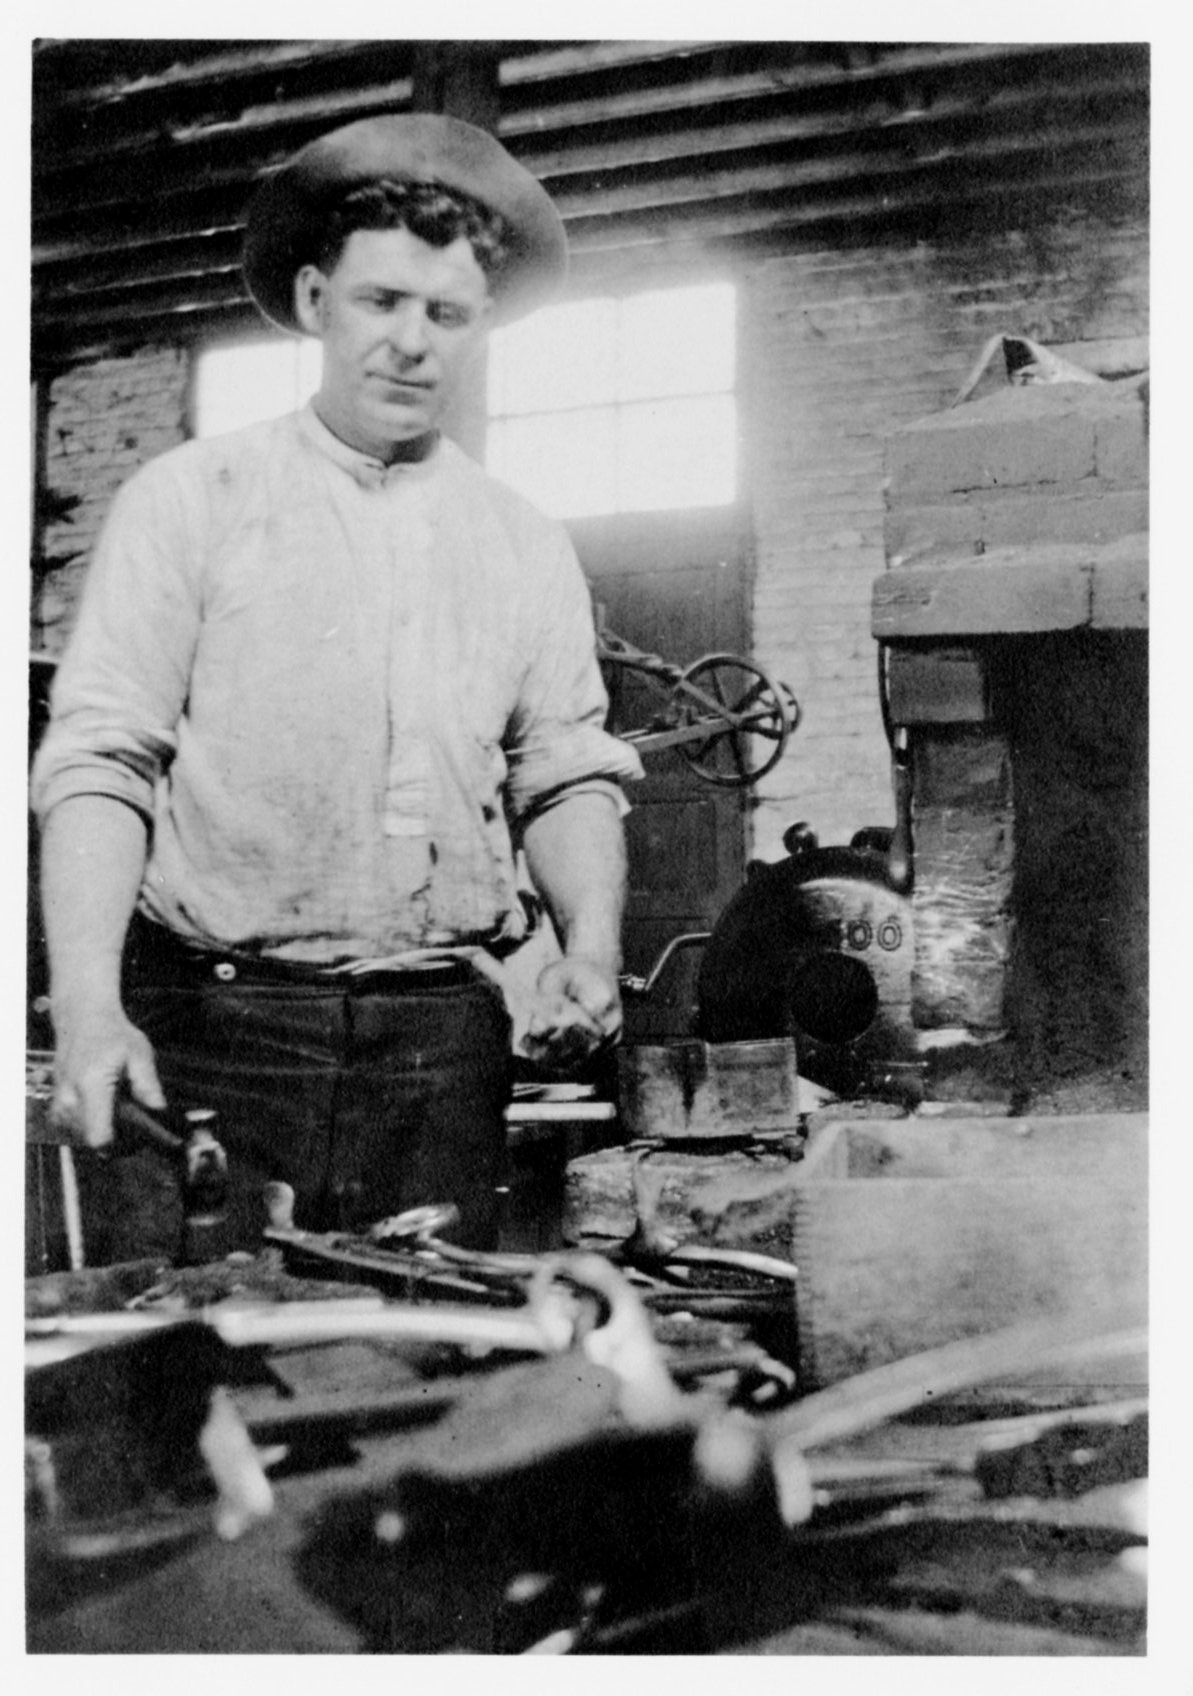 Fred Hunt in his blacksmith shop, 1915